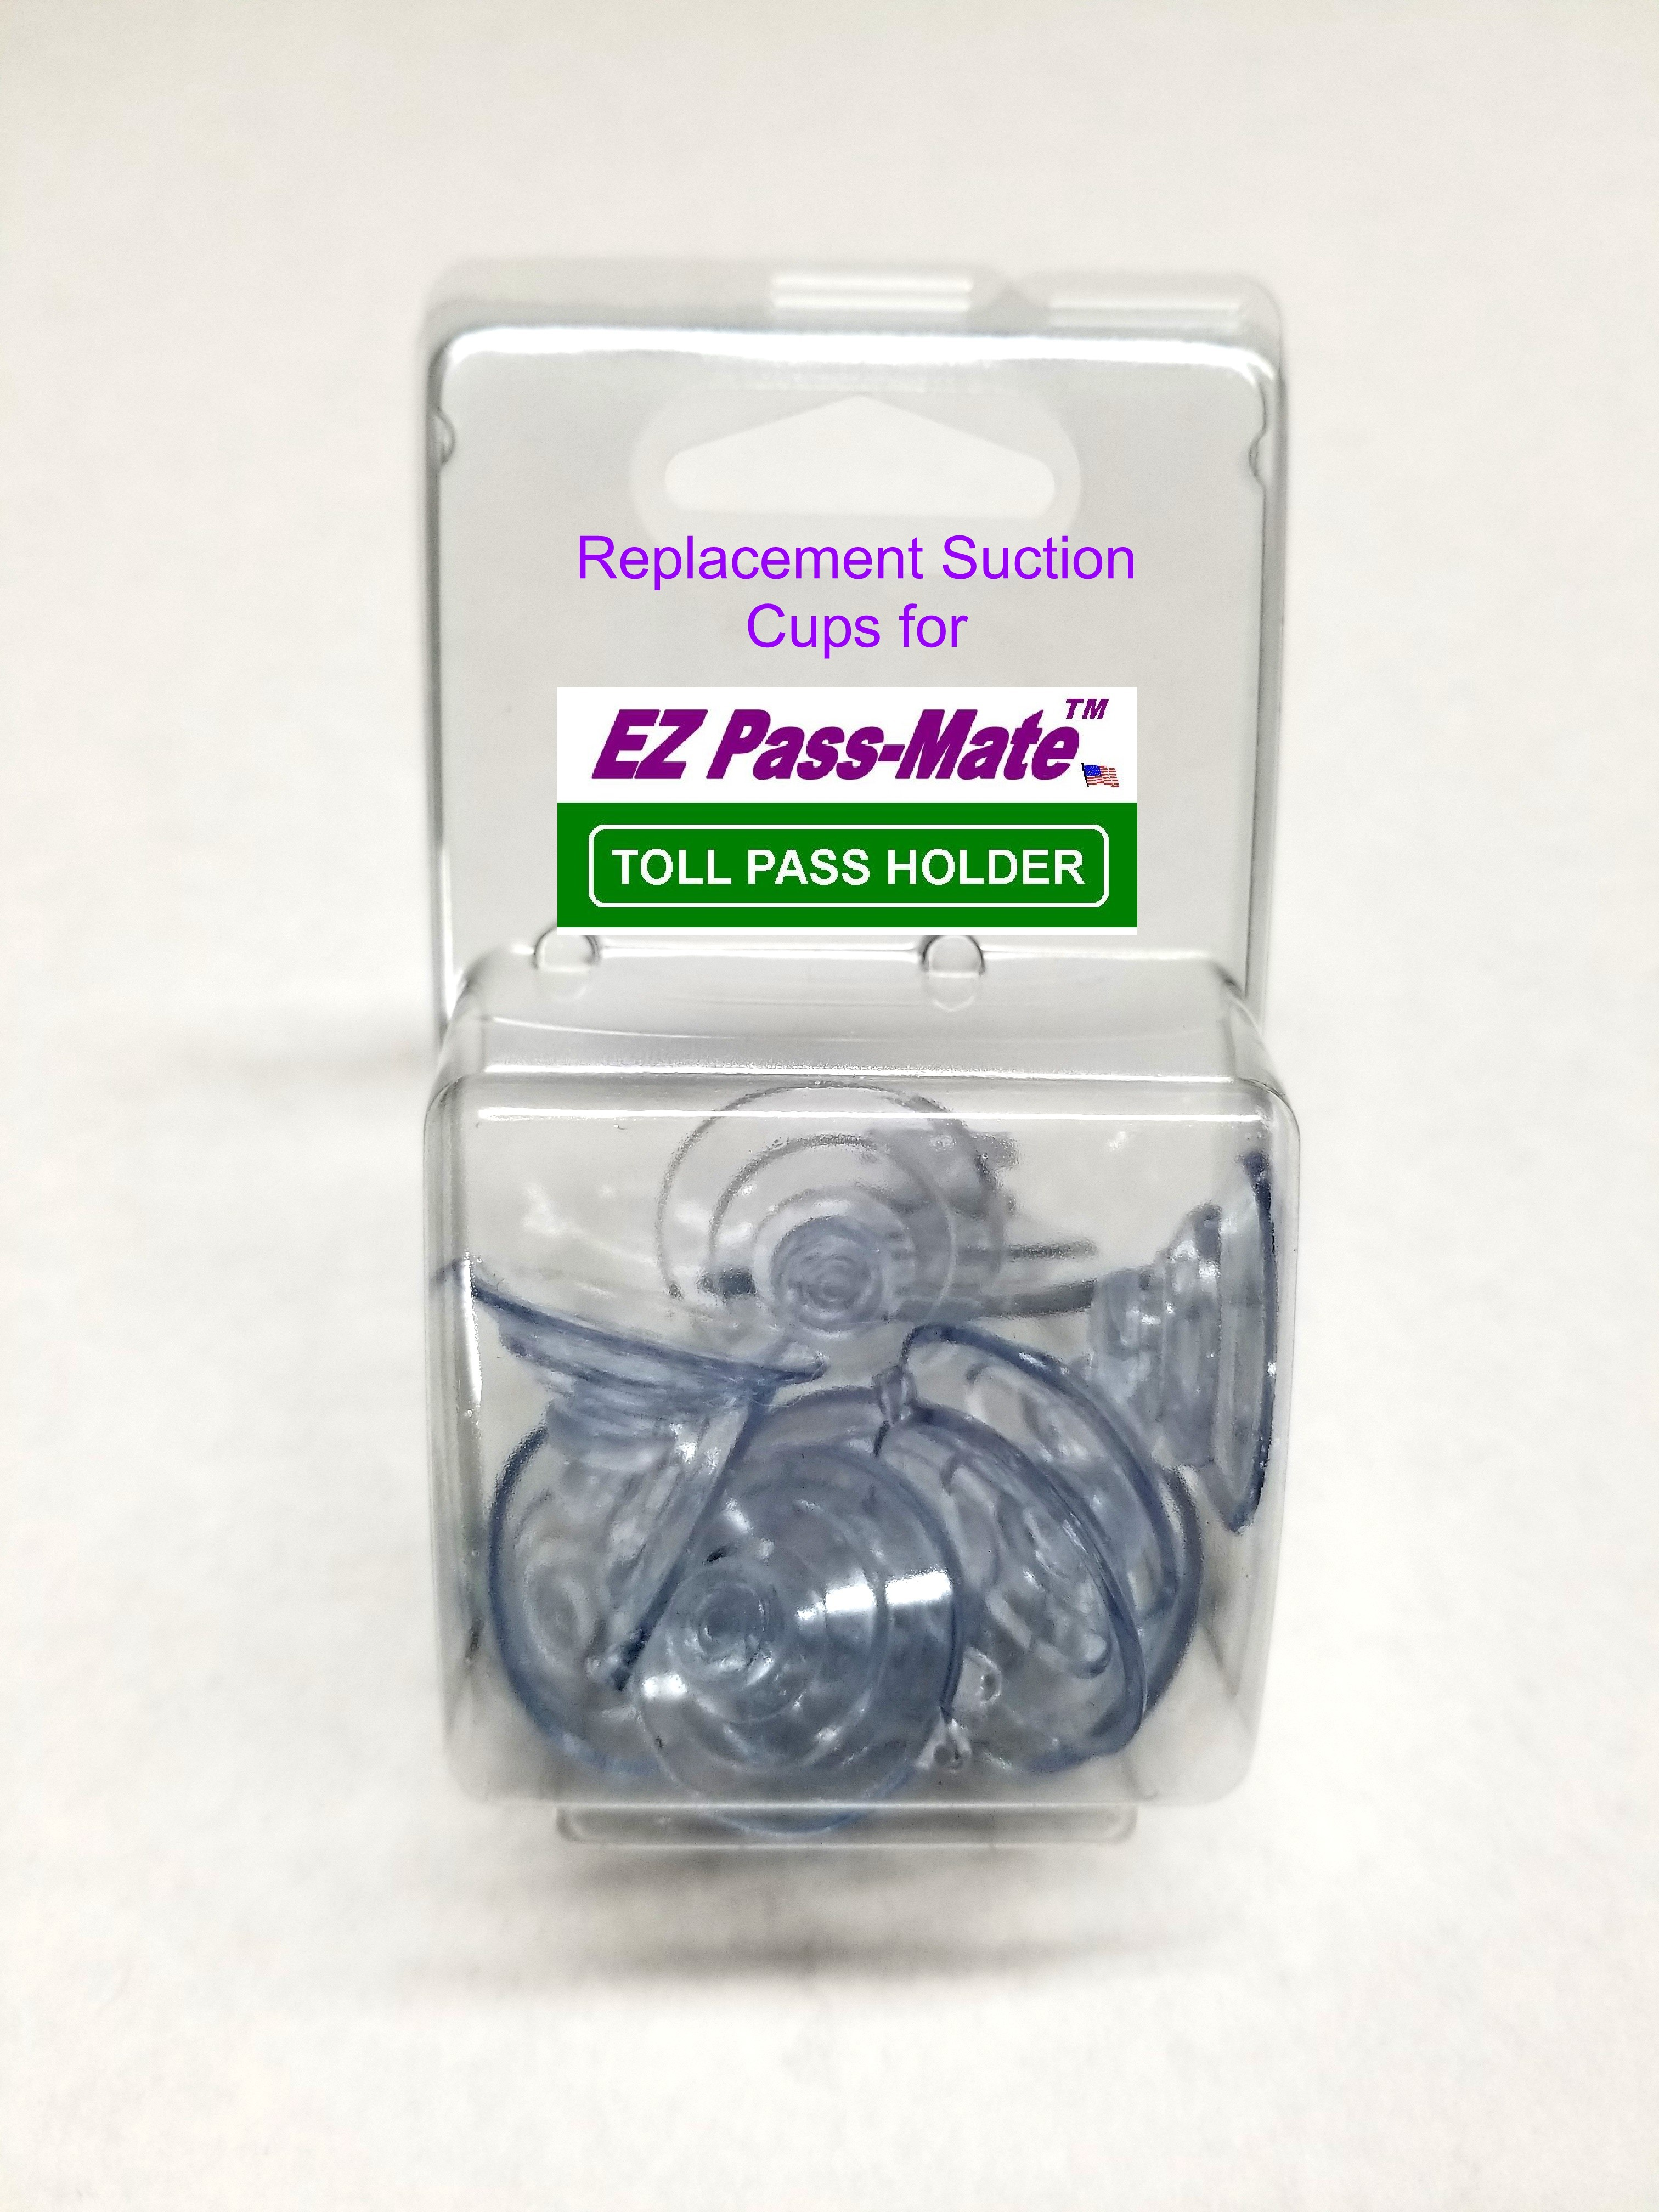 "12 Replacement Suction Cup Small 1.125""- Fits JL Safety EZ Pass-Mate & EZ Flex-Port holders"